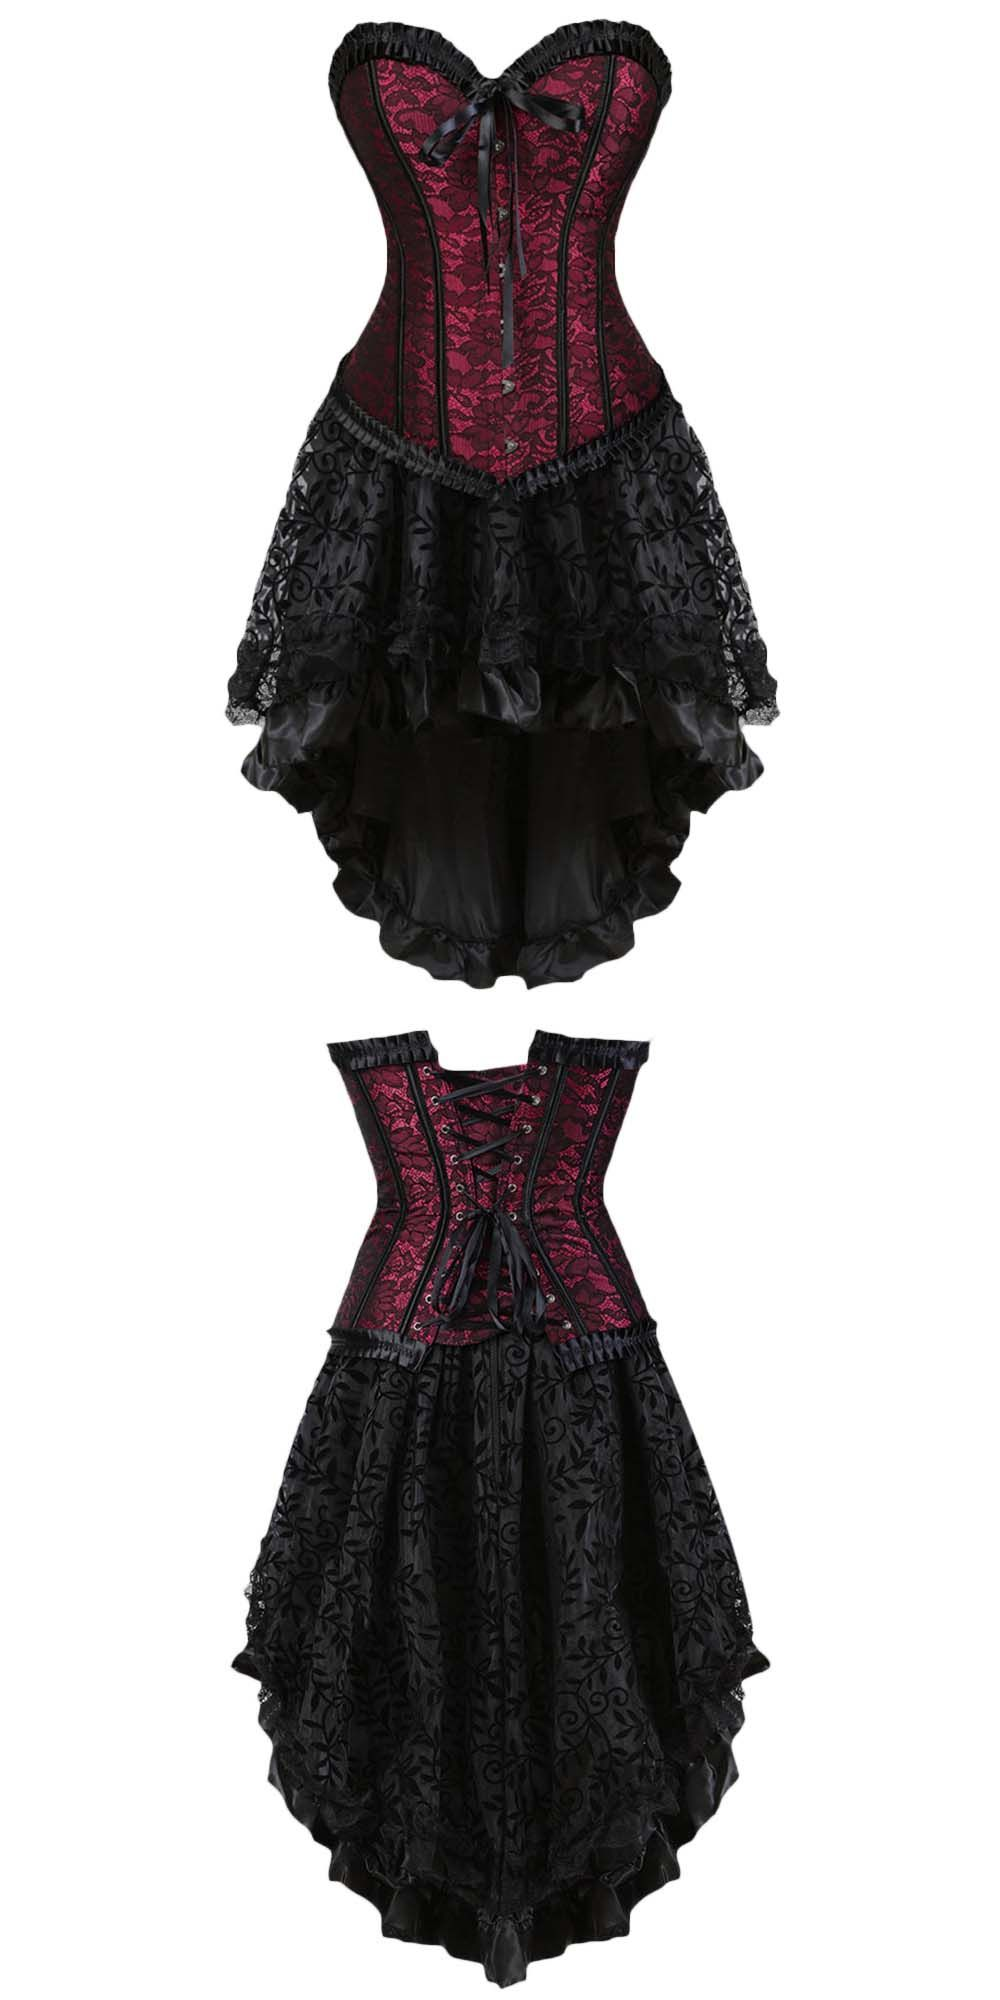 63cb72c7548 Steampunk Vintage Gothic Corset Dress  (S-3XL)